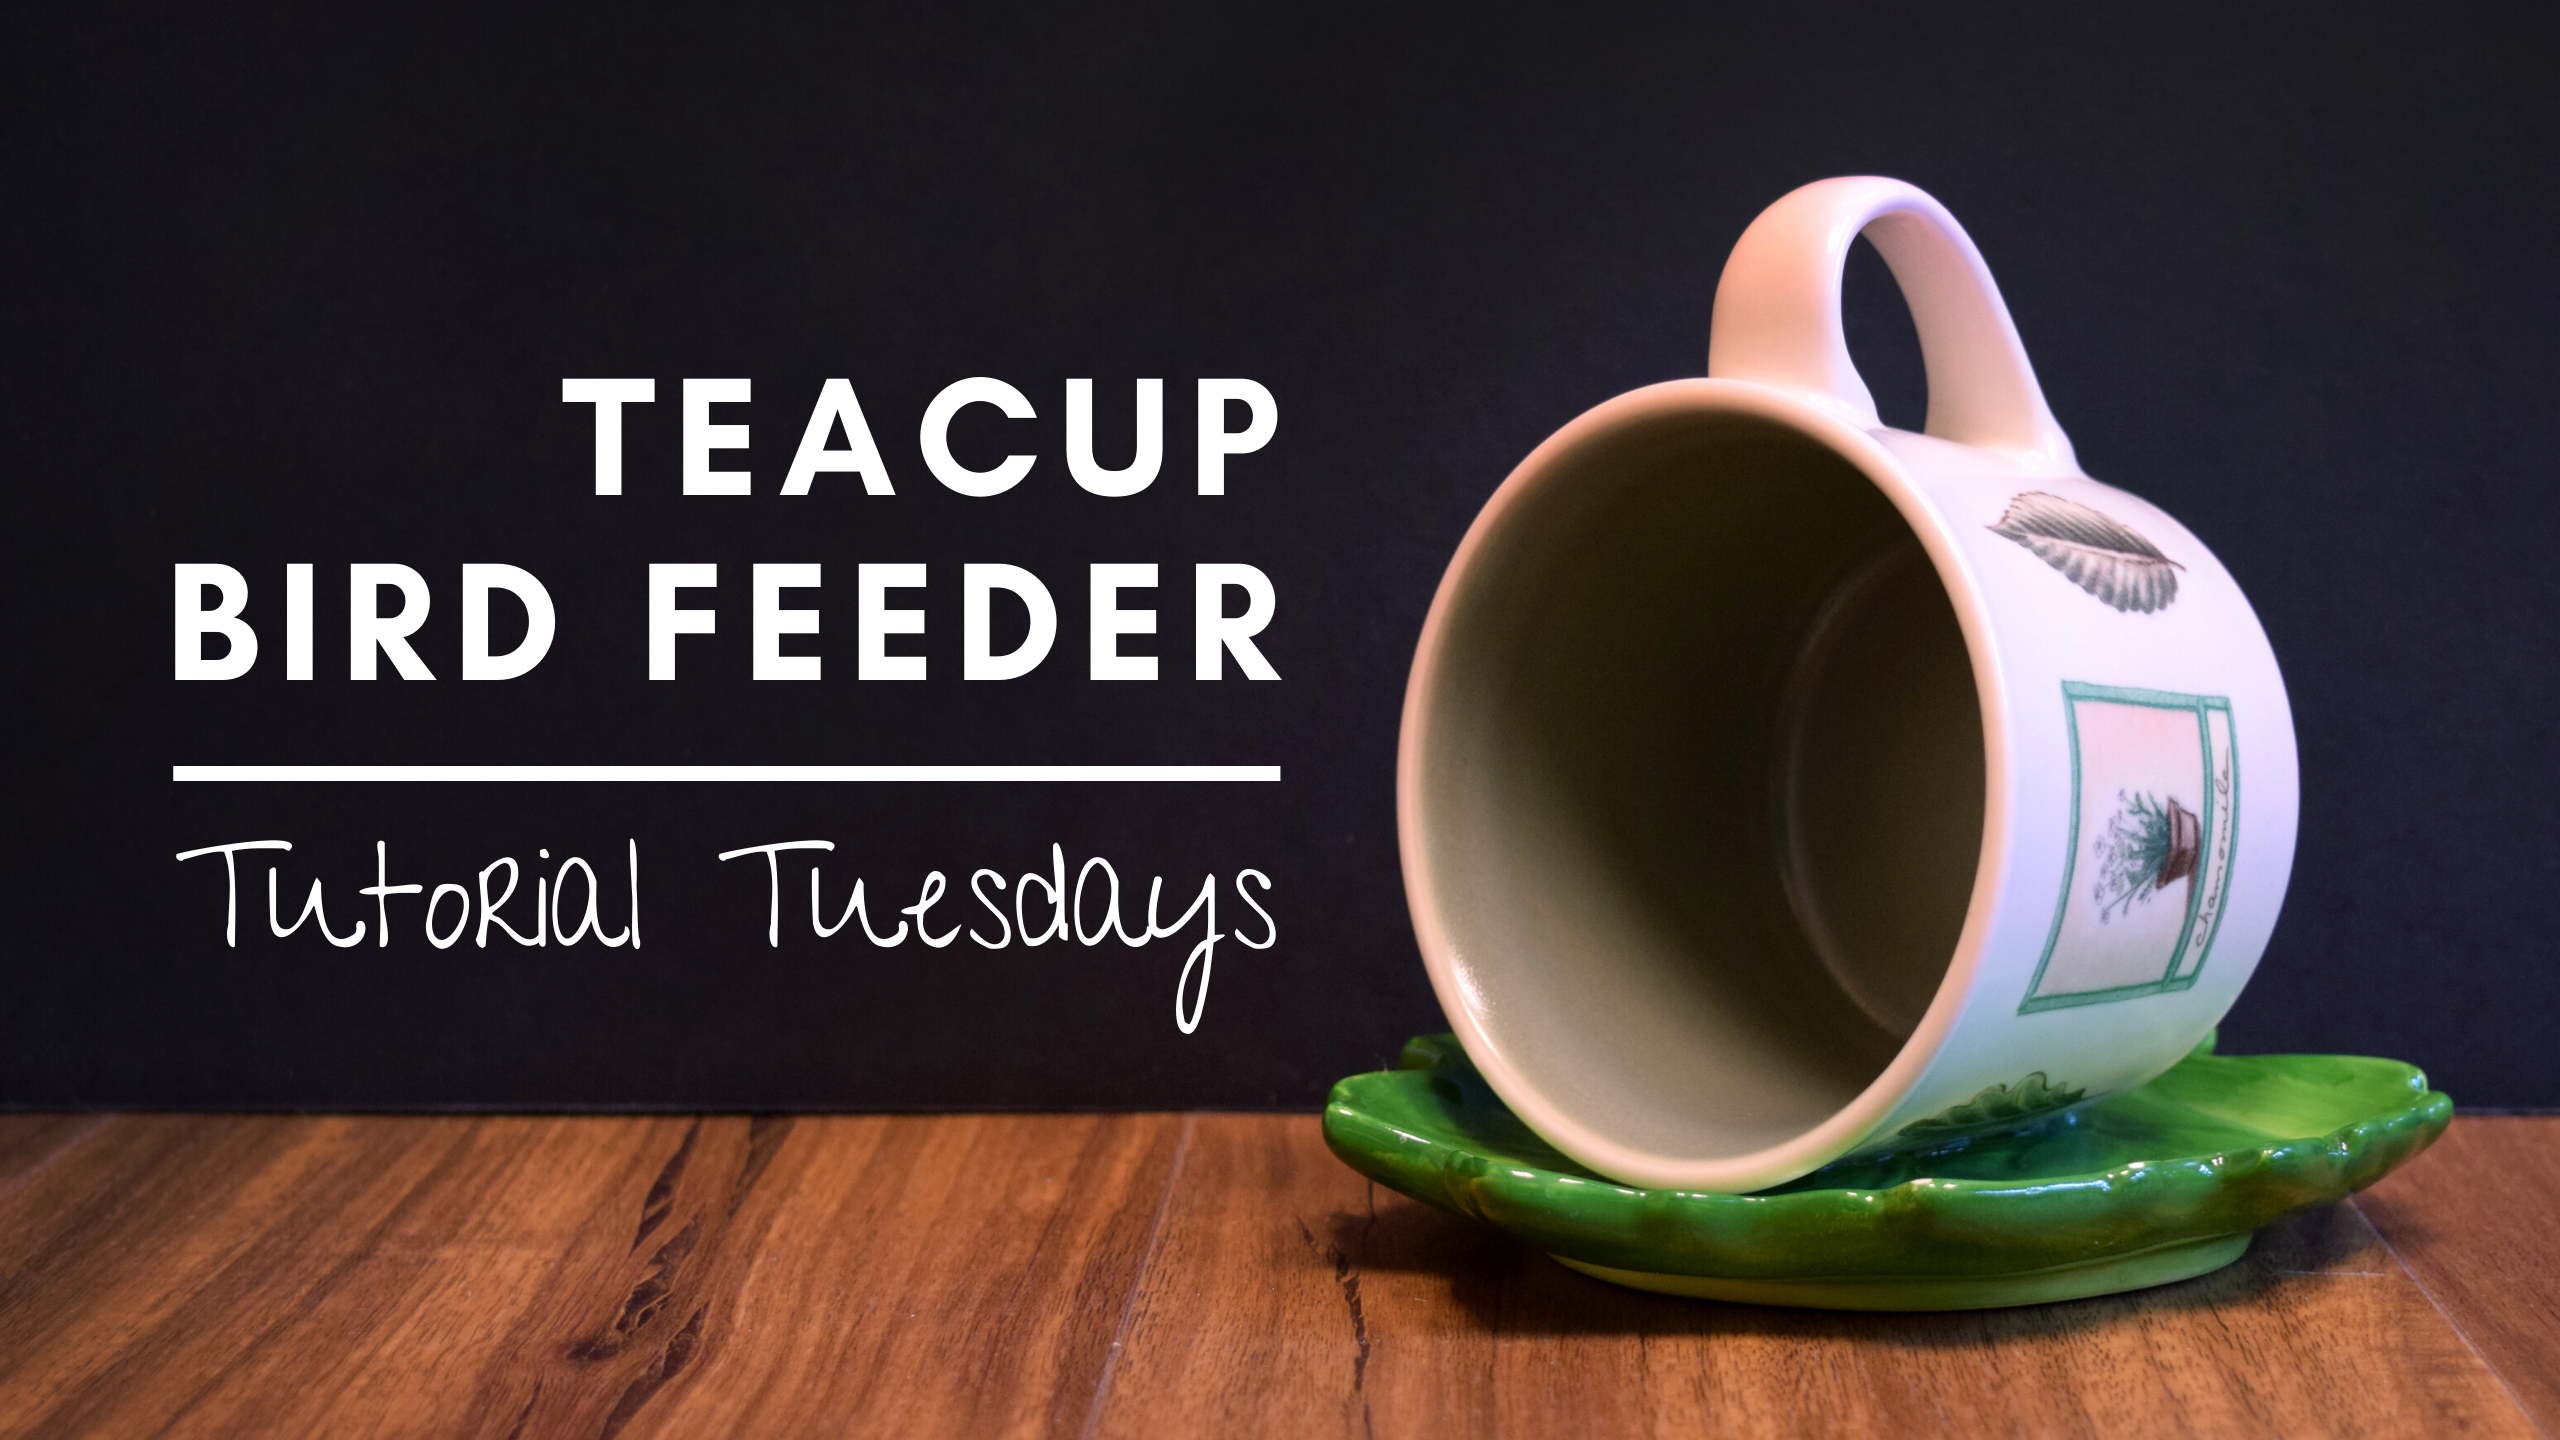 ONLINE - Tutorial Tuesday: Teacup Bird Feeder